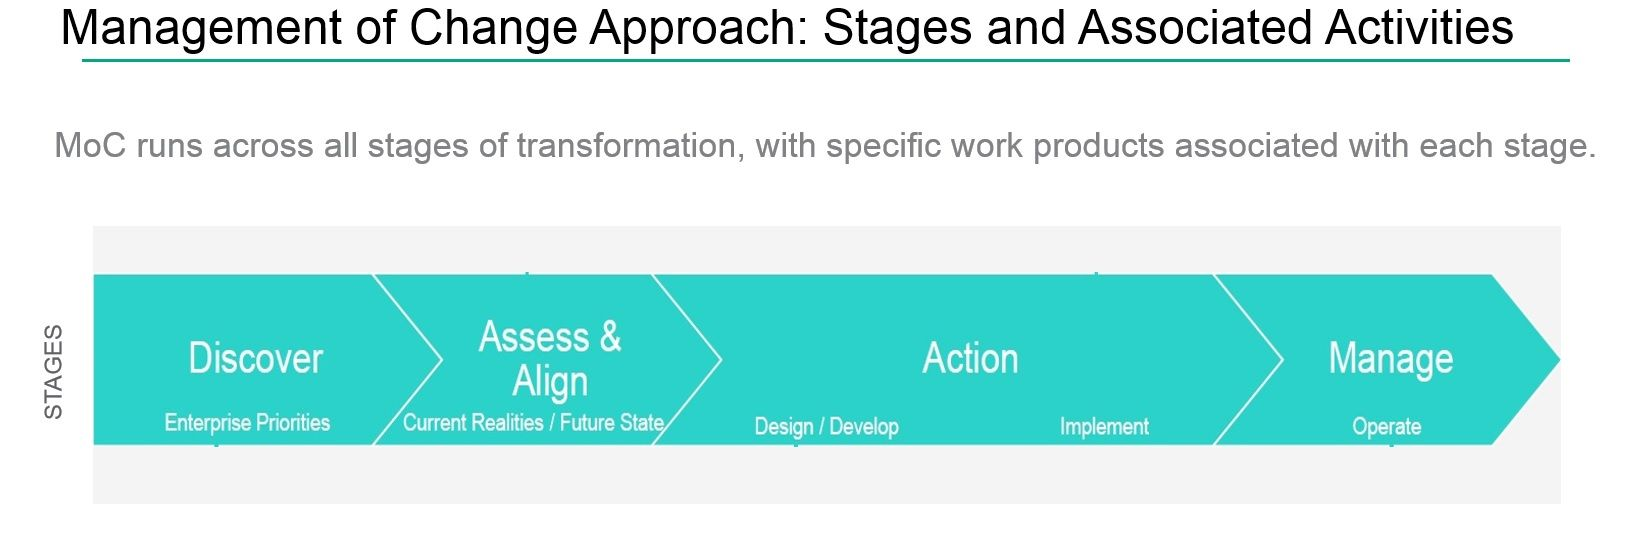 Figure 1 : Management of Change Stages